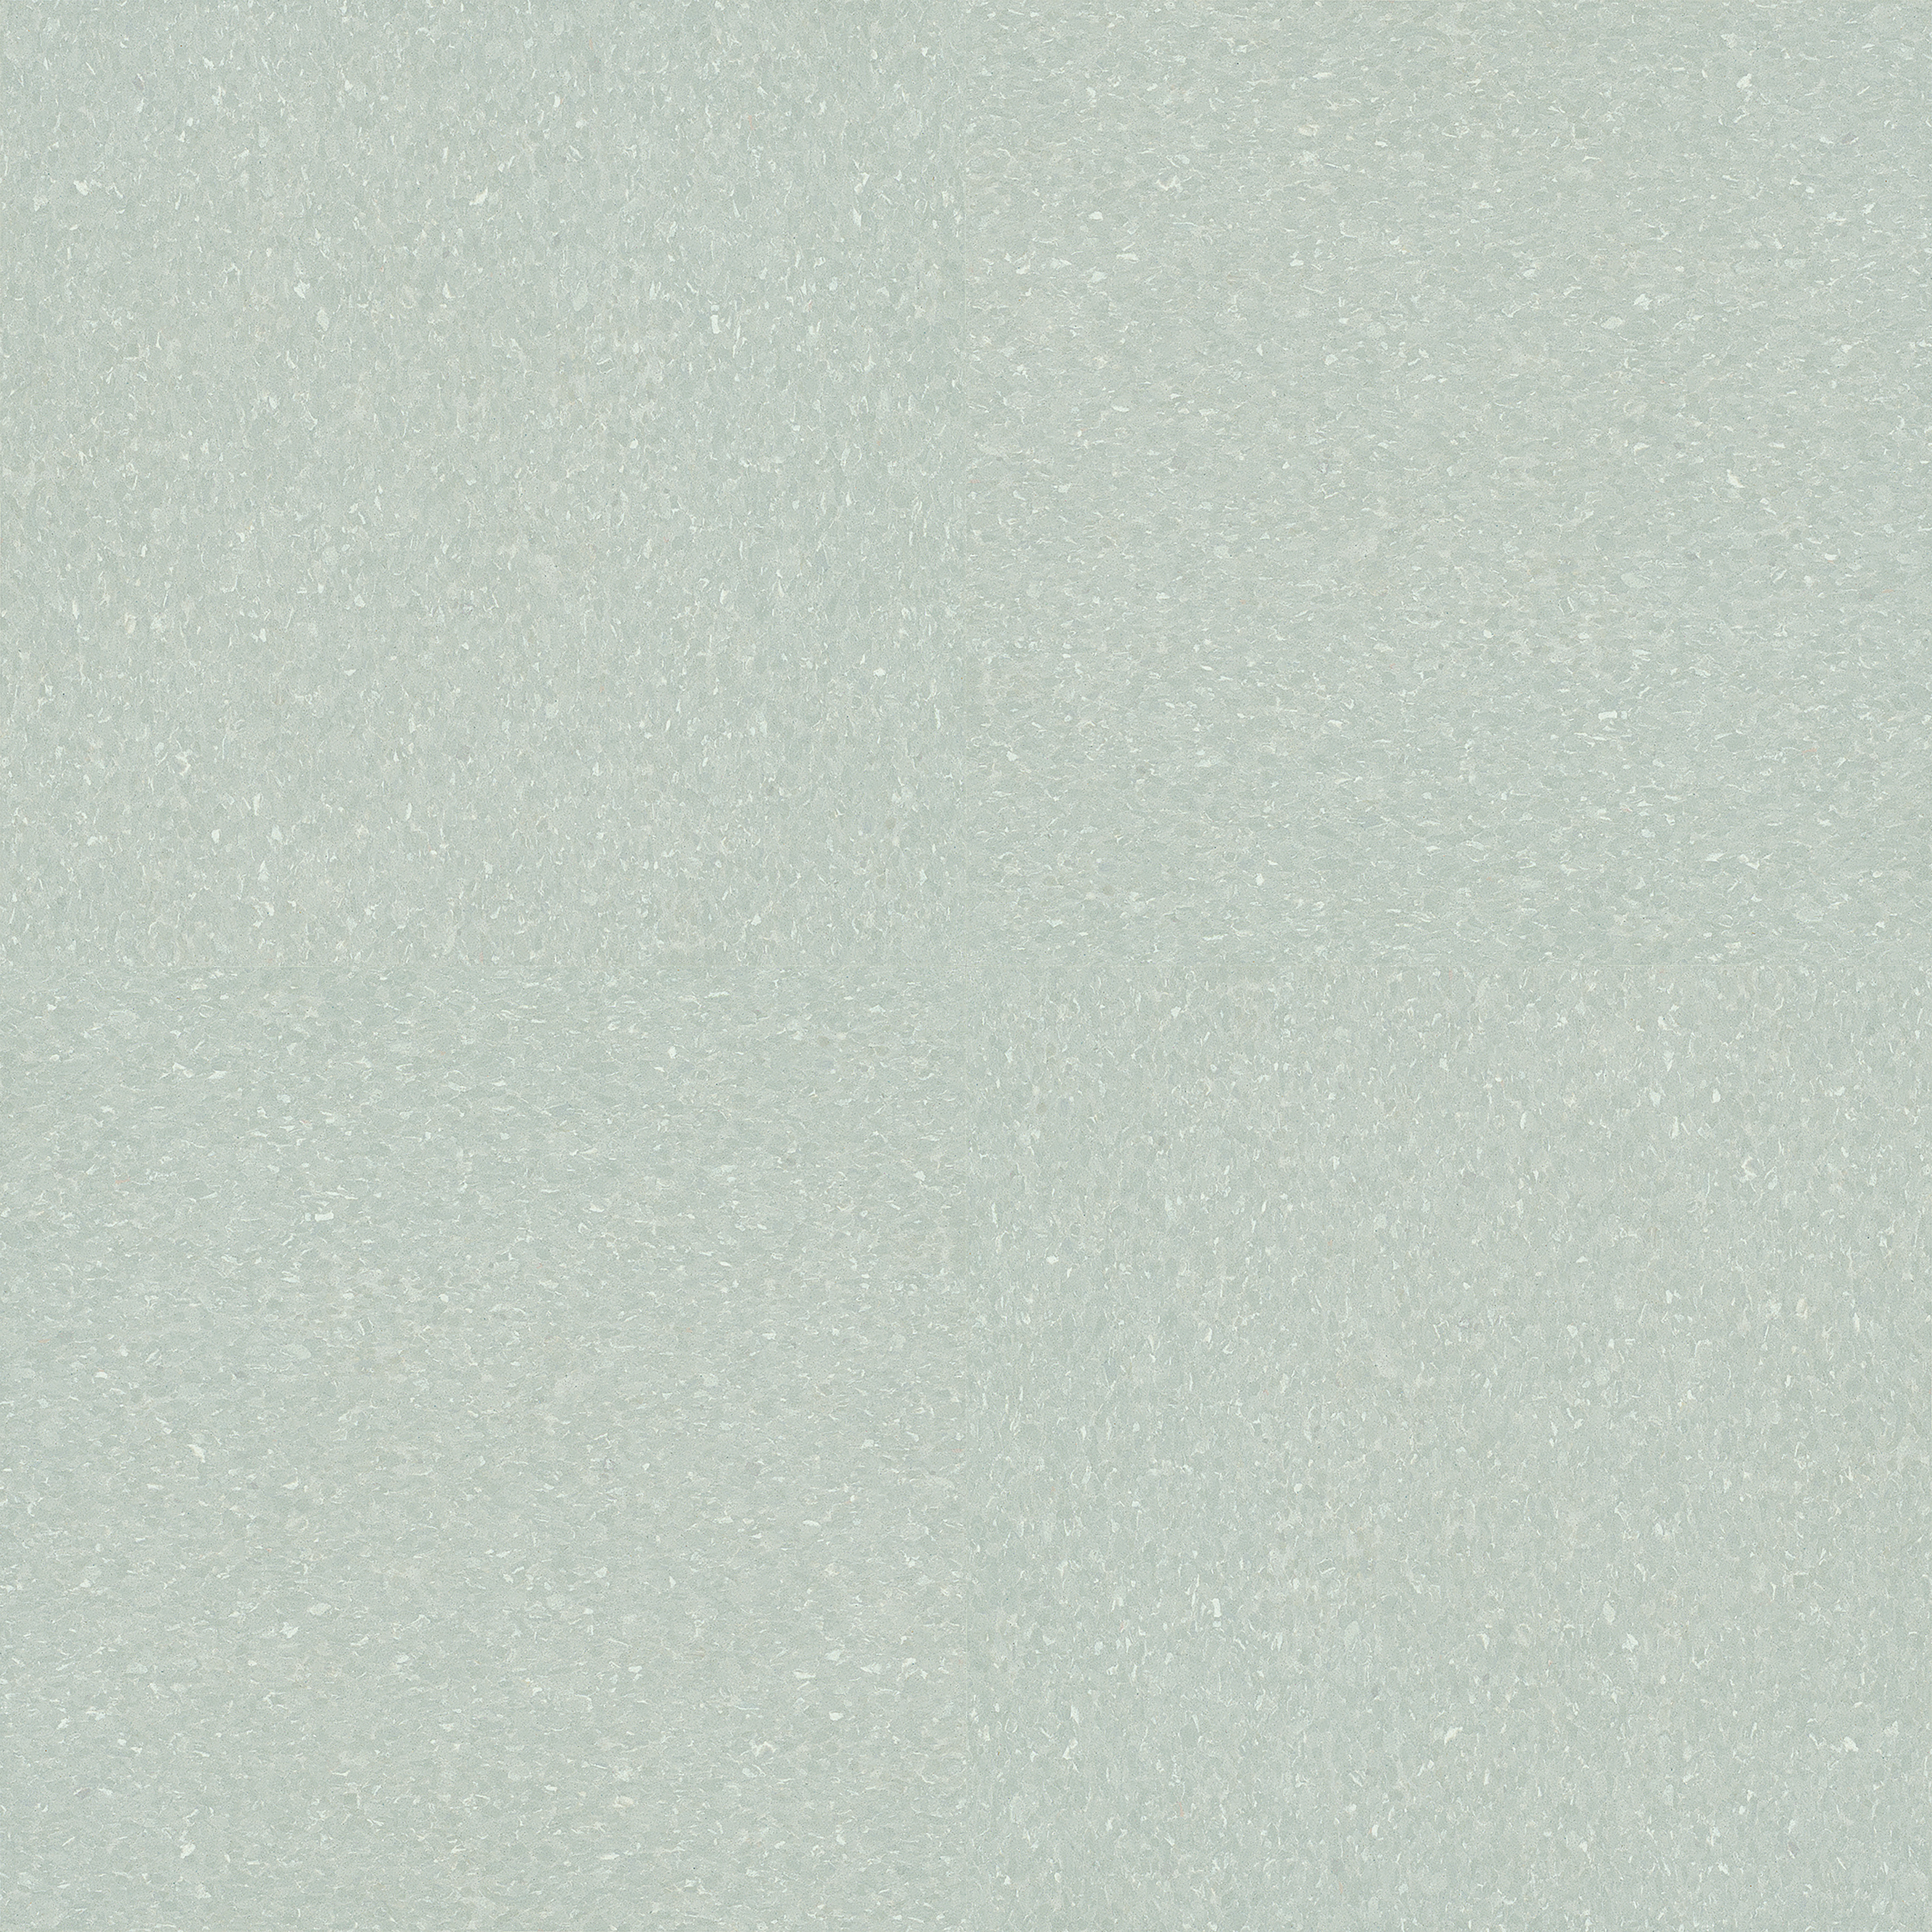 Soft Warm Gray 5c861 Armstrong Flooring Commercial